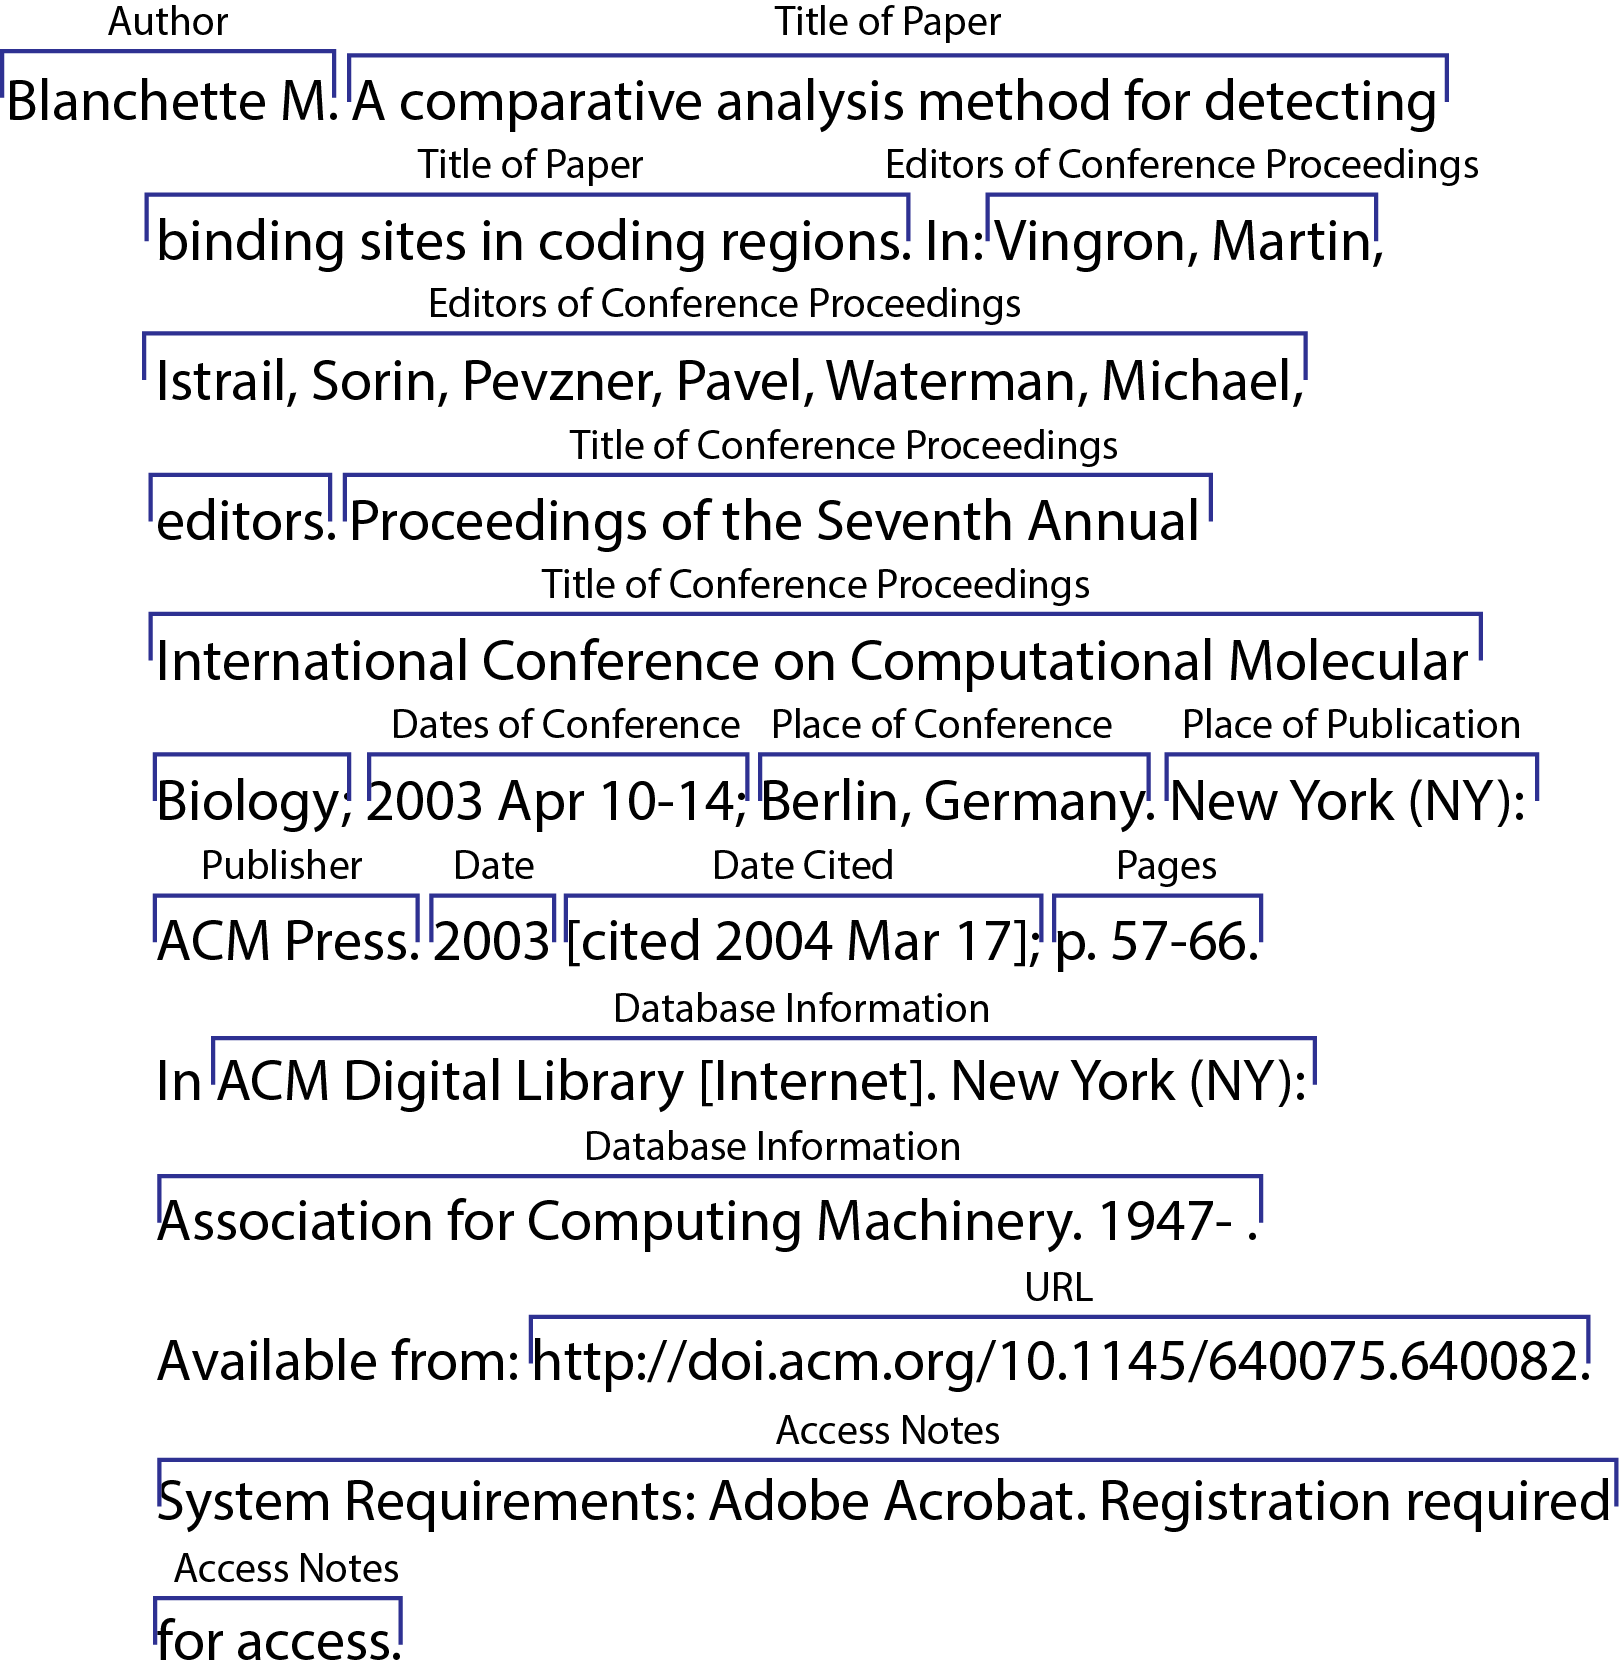 008 Research Paper Cse Cbe Citation Online Conference Retrieved From An Database Cite Outstanding Papers Referencing Harvard Style Website In Mla Full